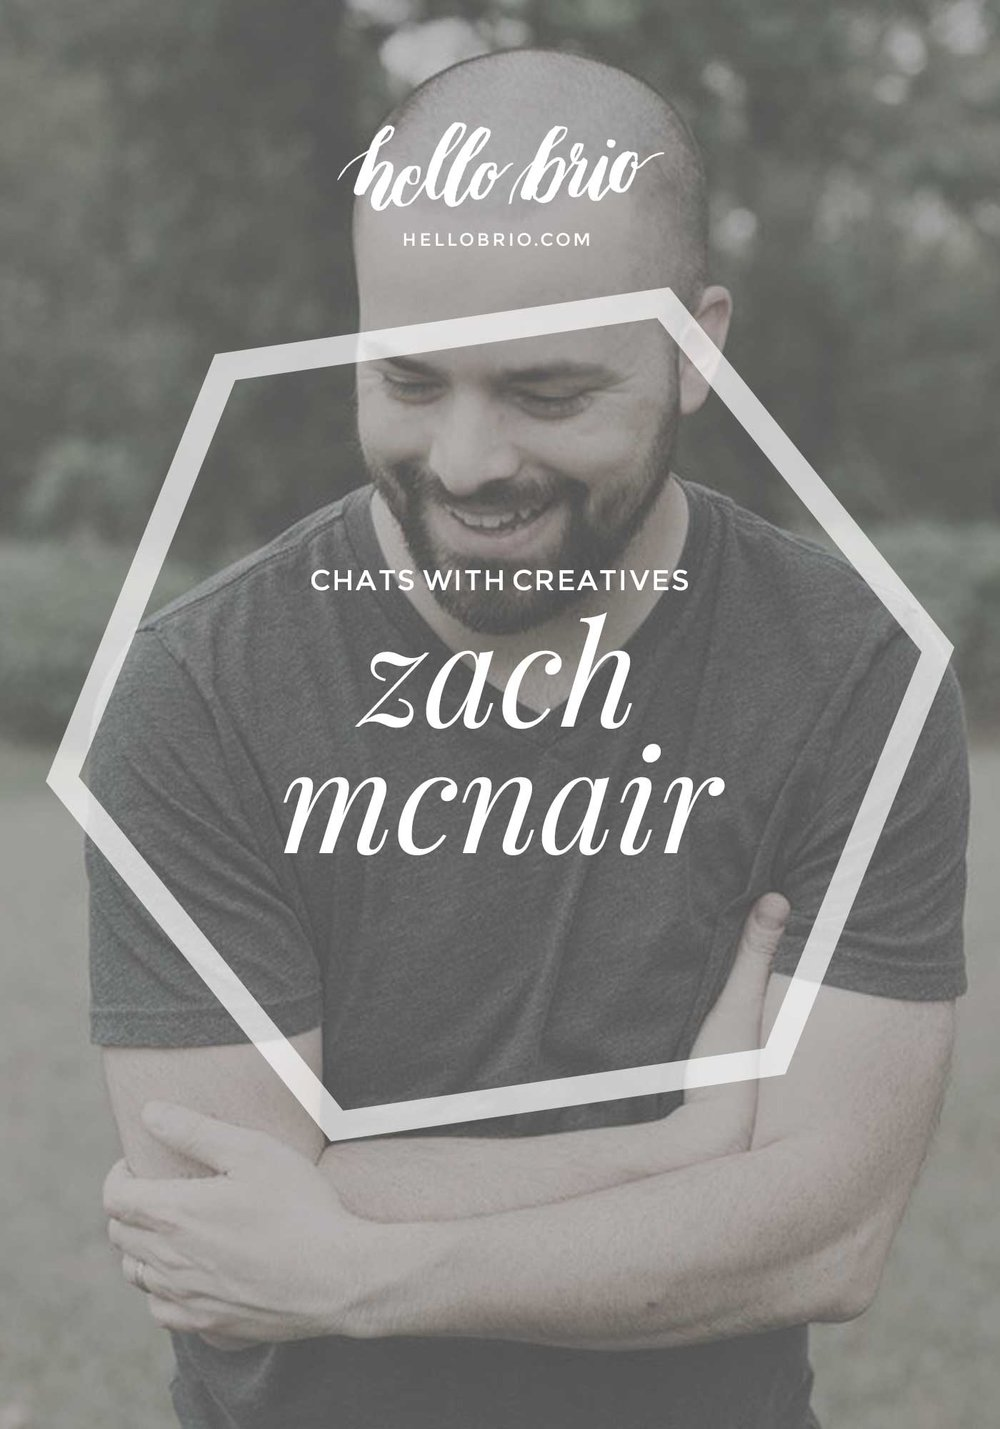 Chats with Creatives | Zach McNair